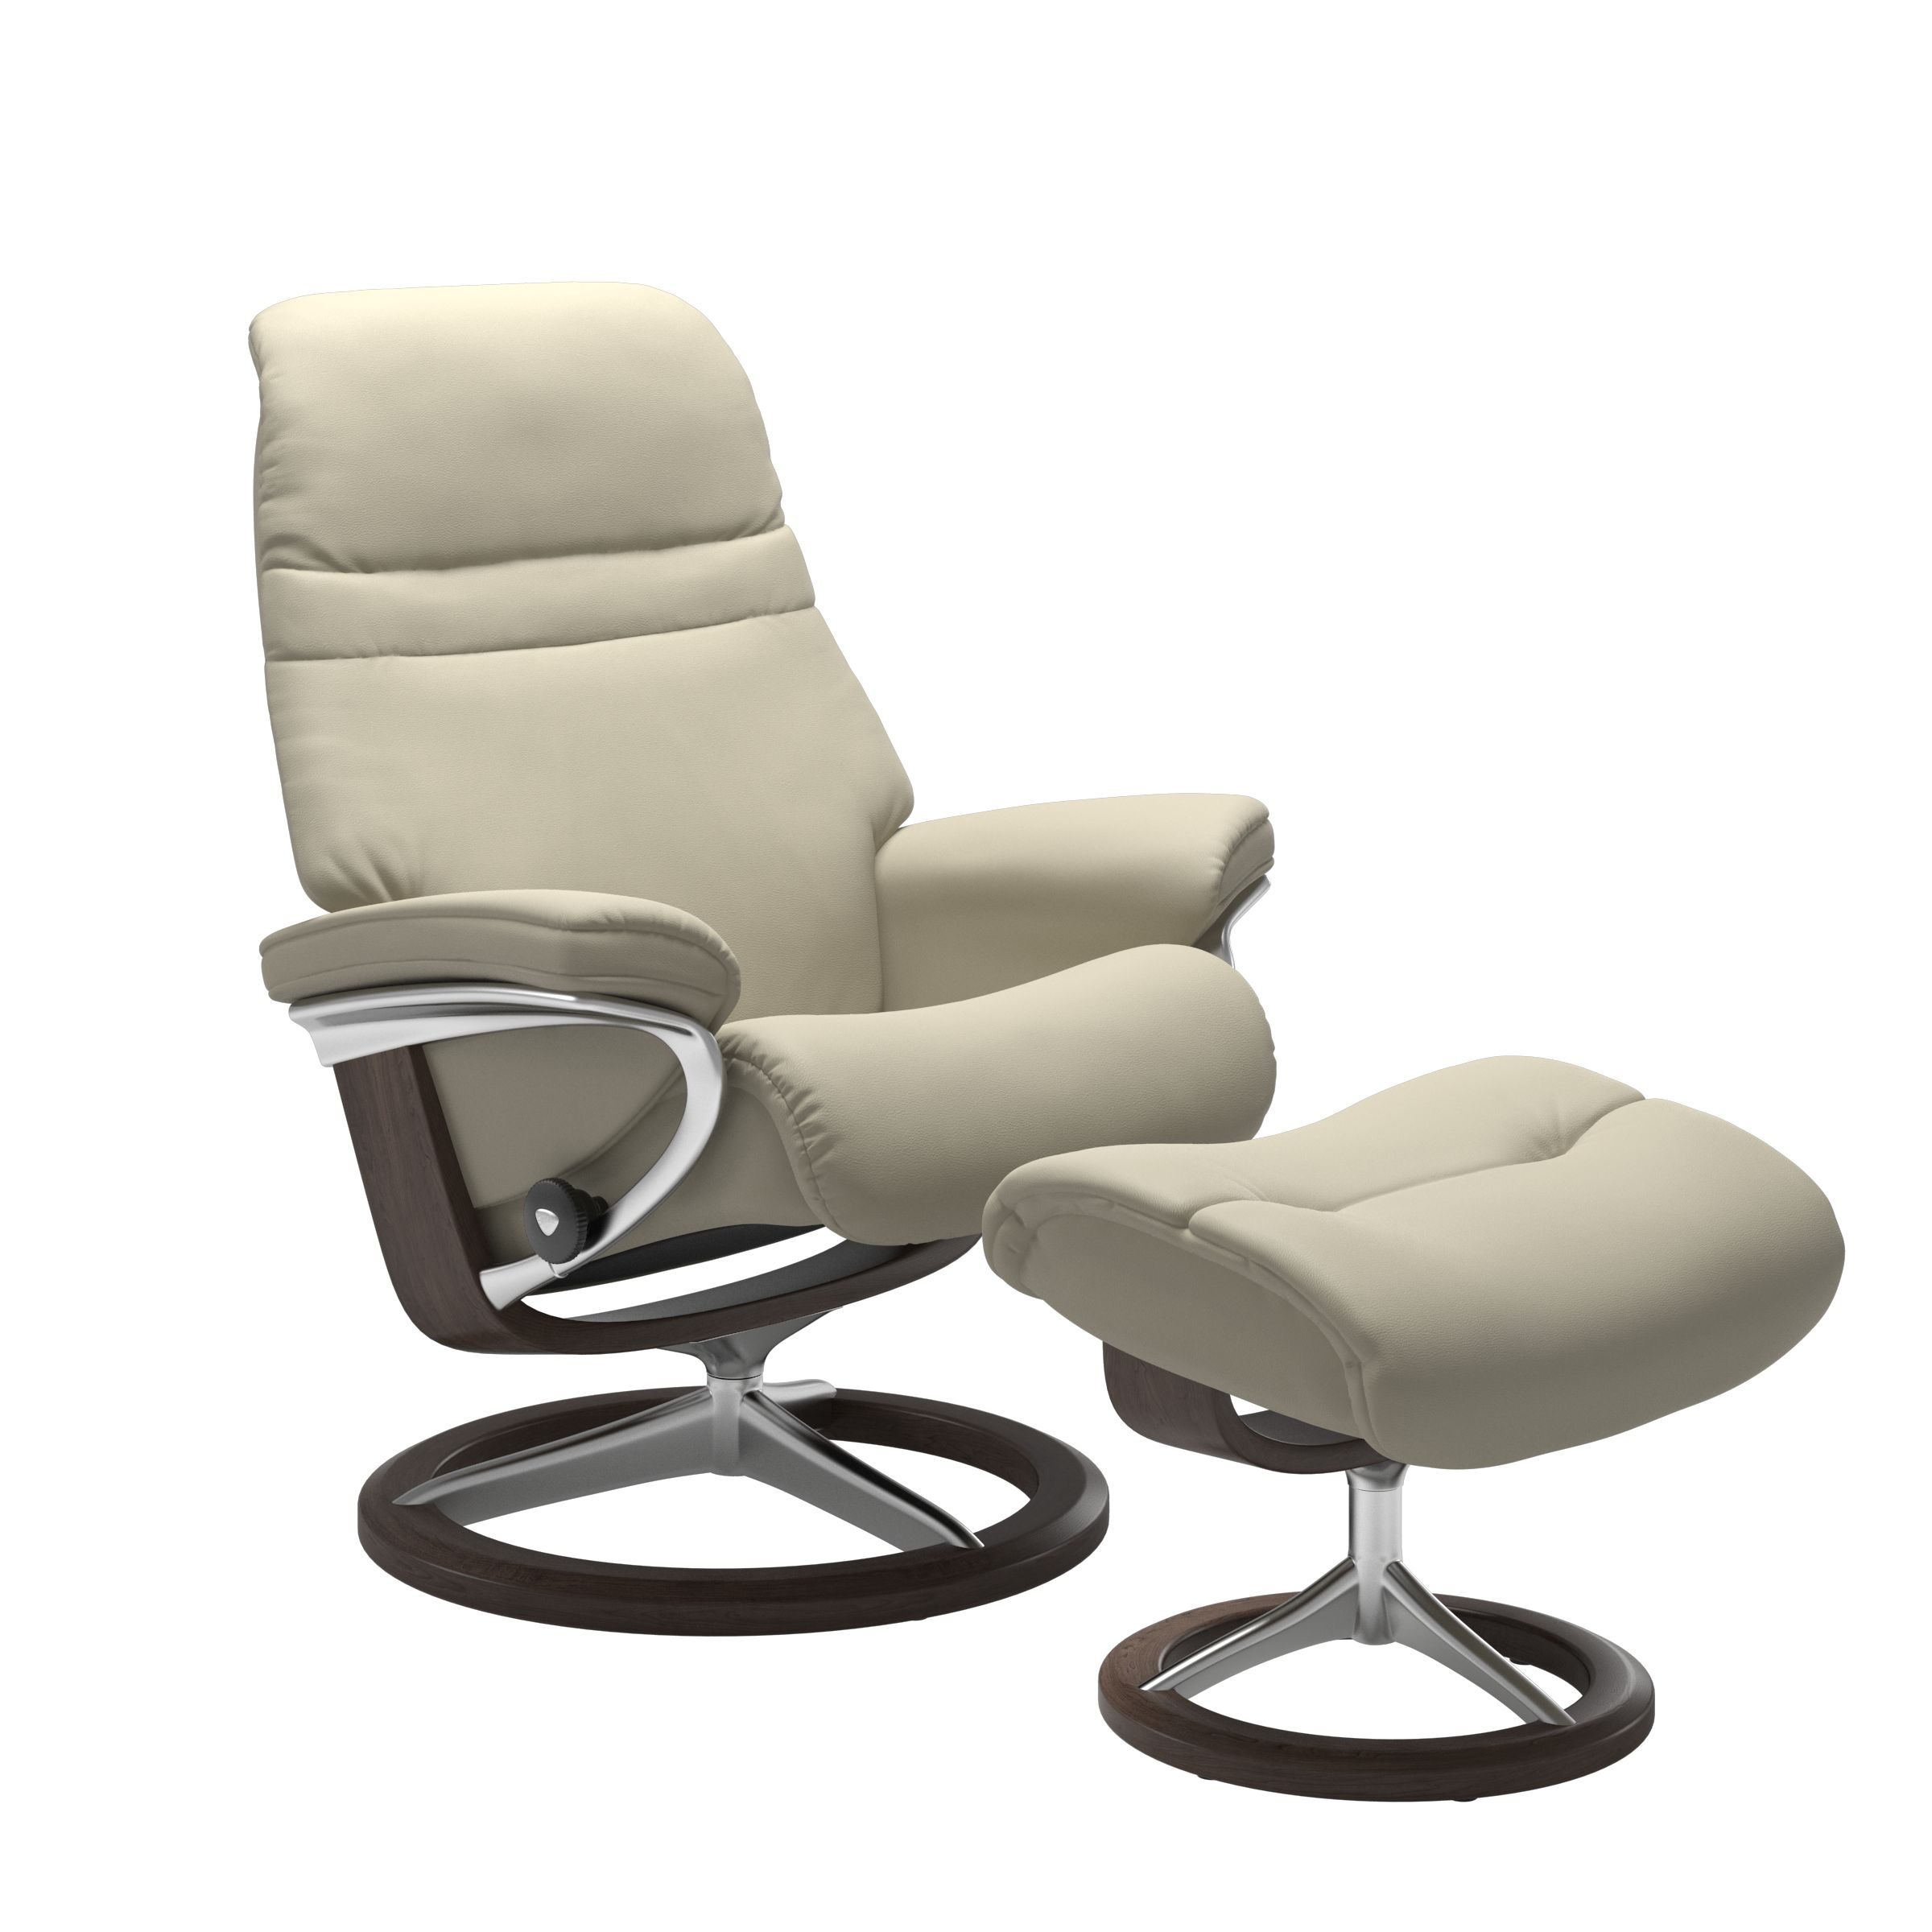 Stressless City Sessel Preis Stressless Sessel Garantie